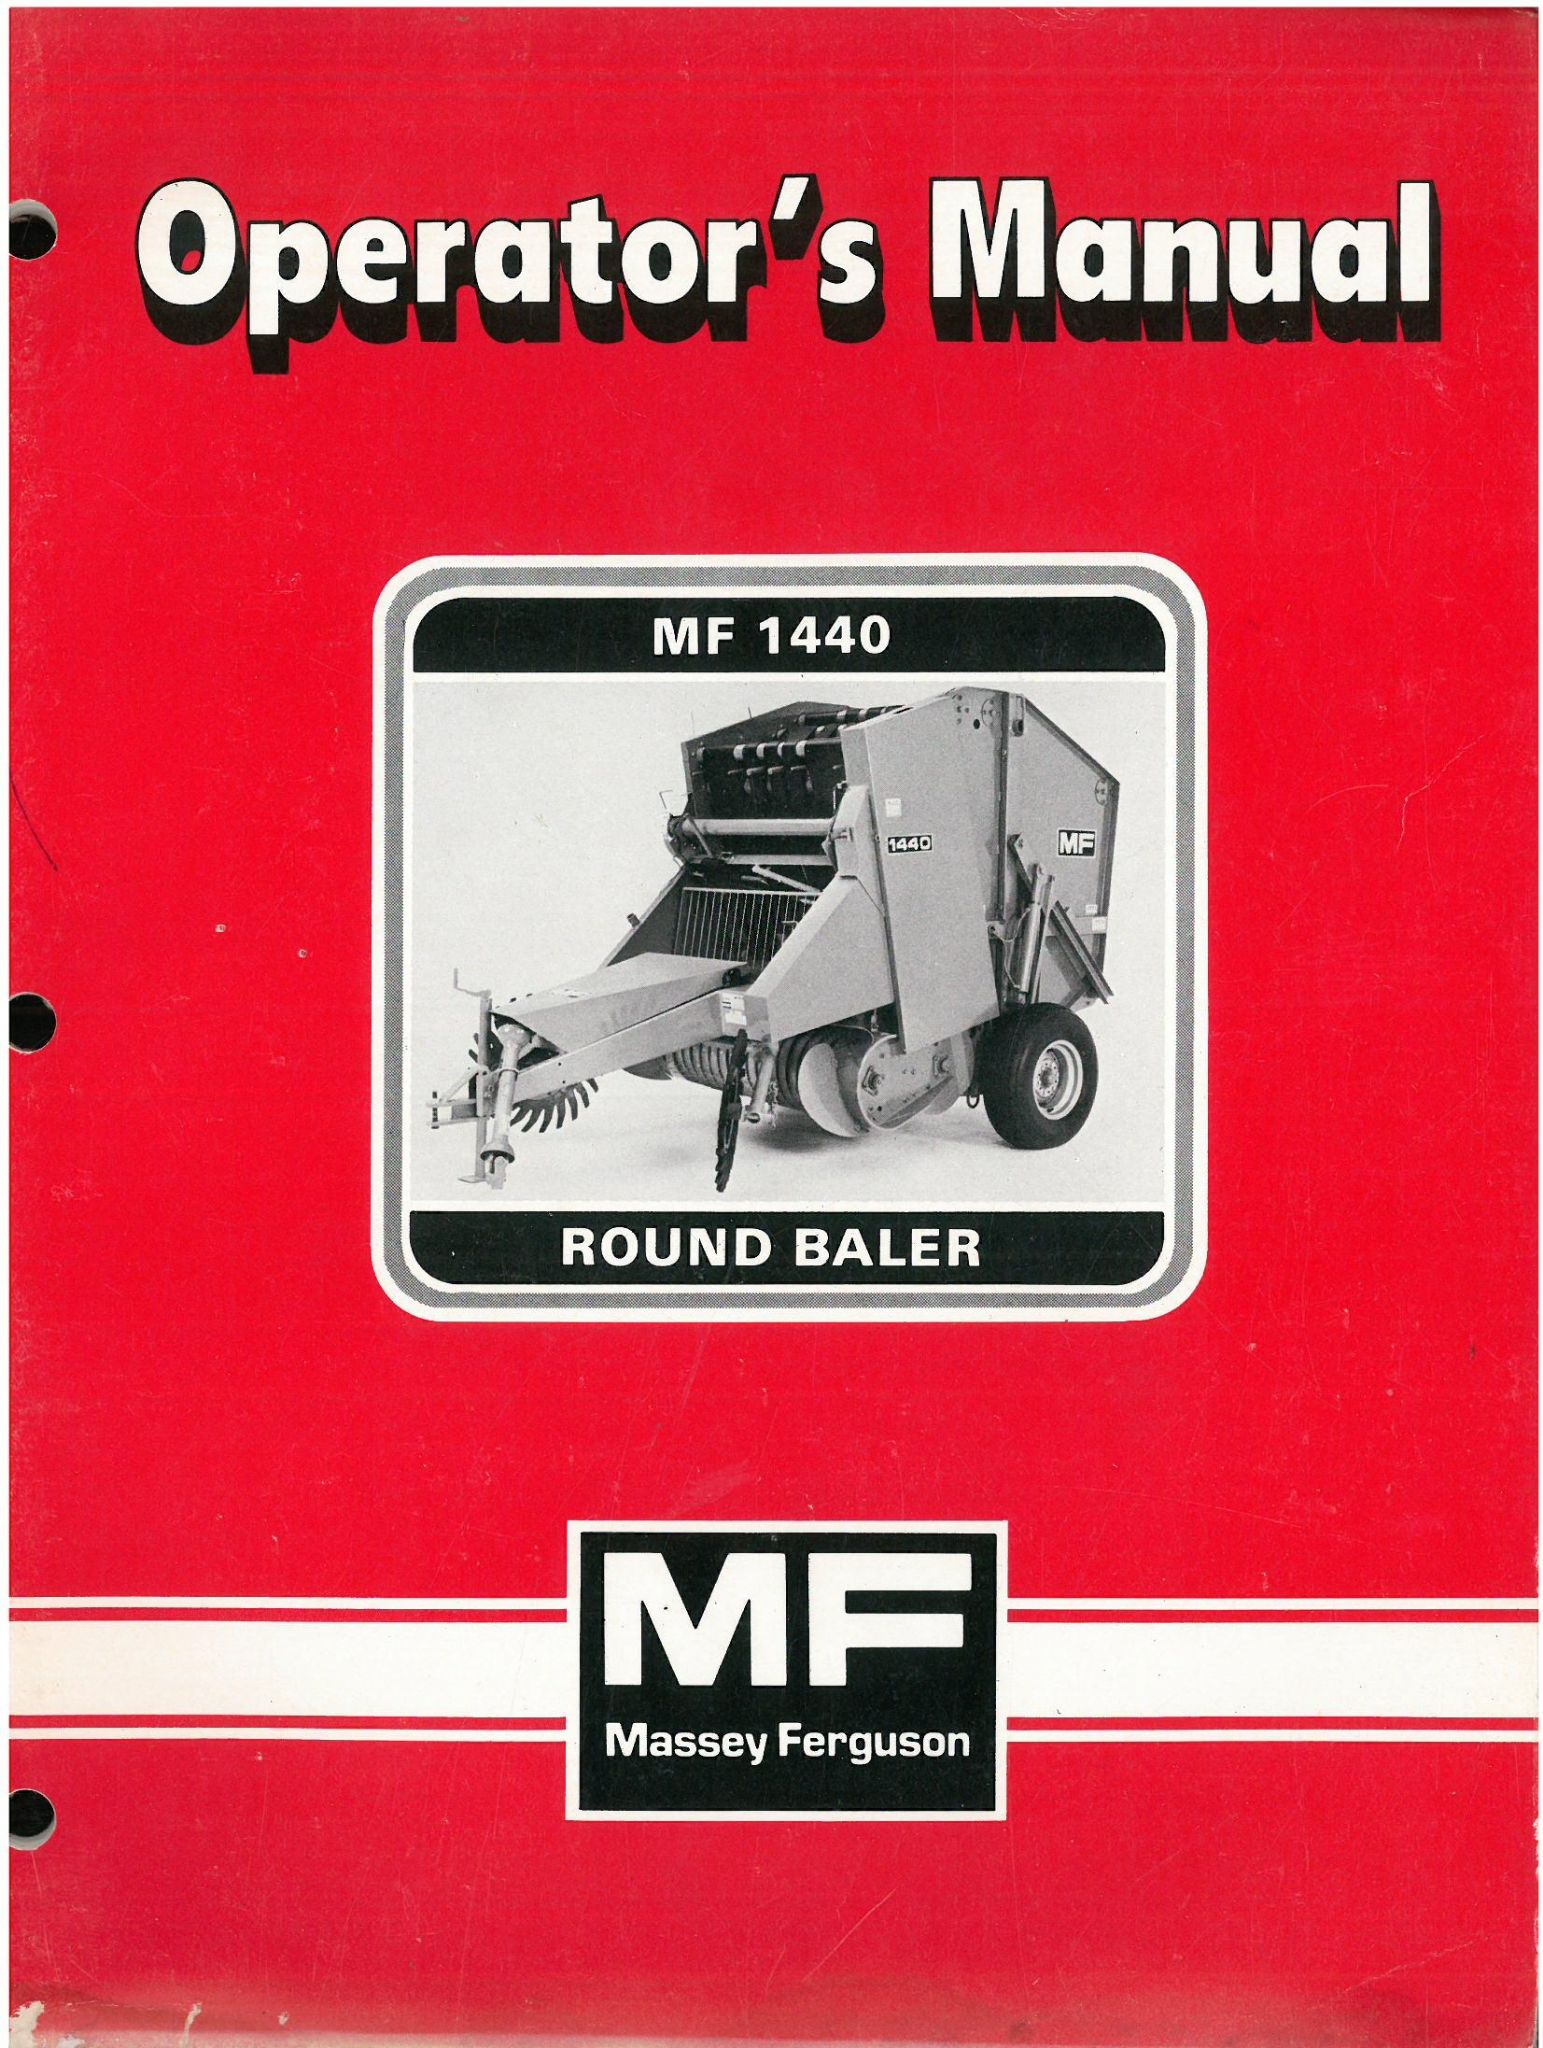 Mf1440 Round Baler Operators Mannual Massey Ferguson Business, Office & Industrial